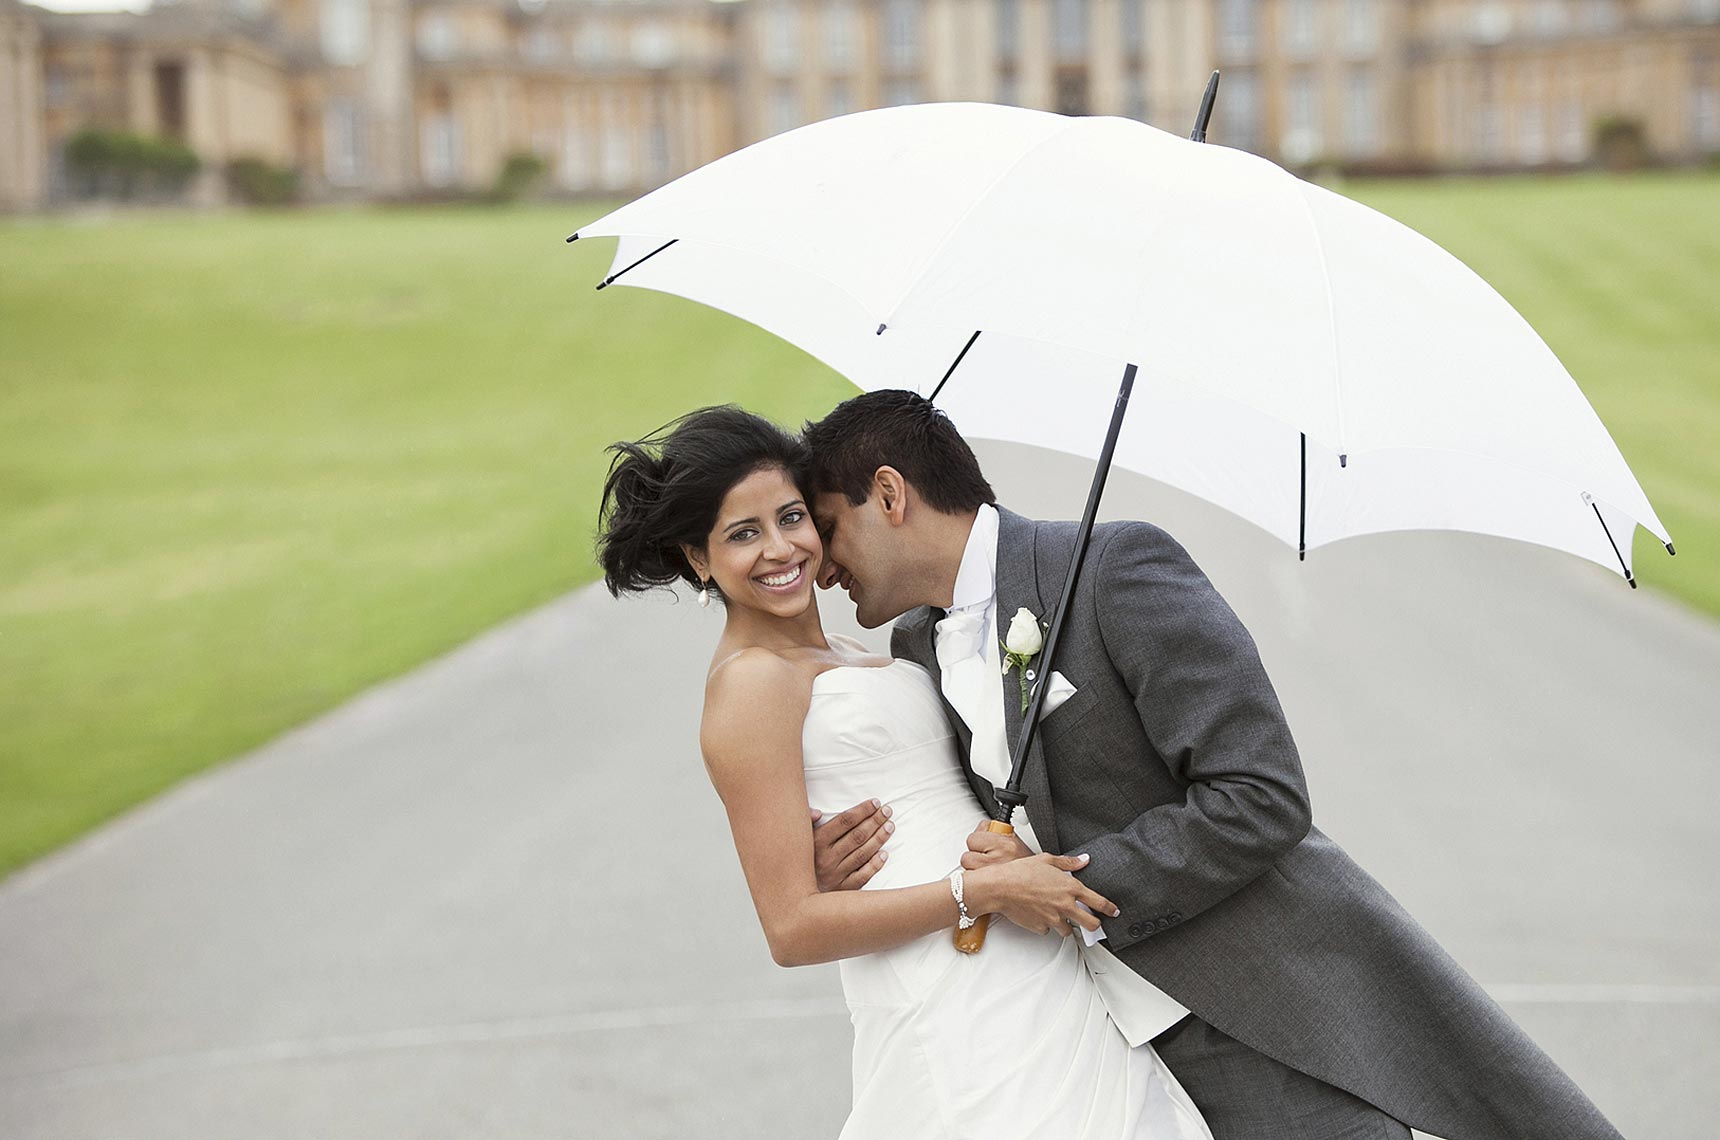 contemporary-wedding-photograph-Blenheim-palace.jpg